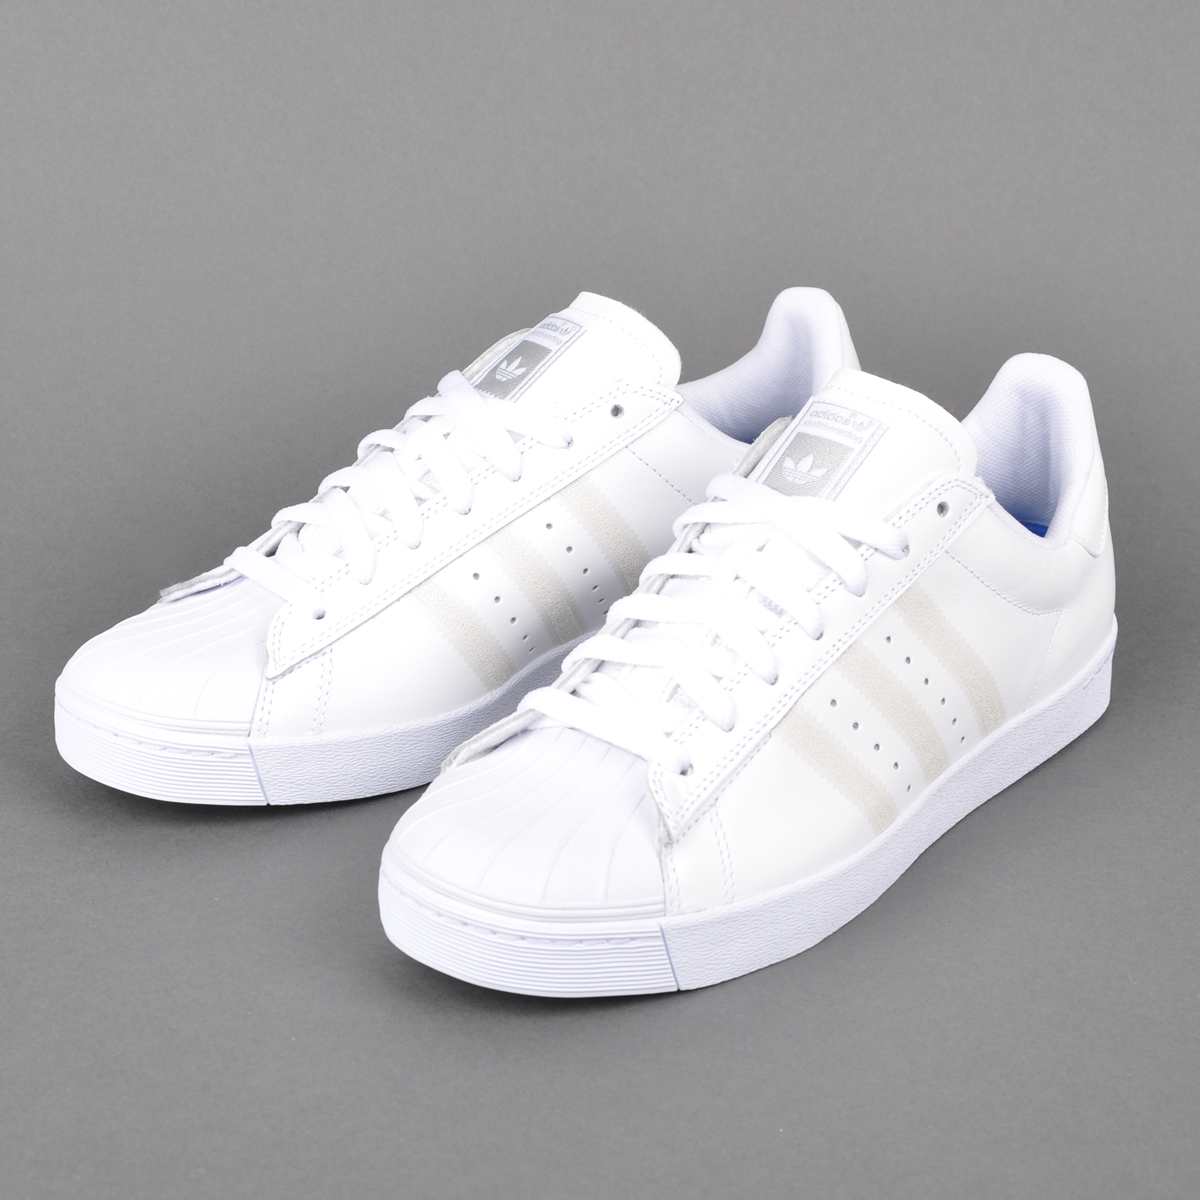 Boys Adidas Superstar Vulc Skate Shoes Zumiez